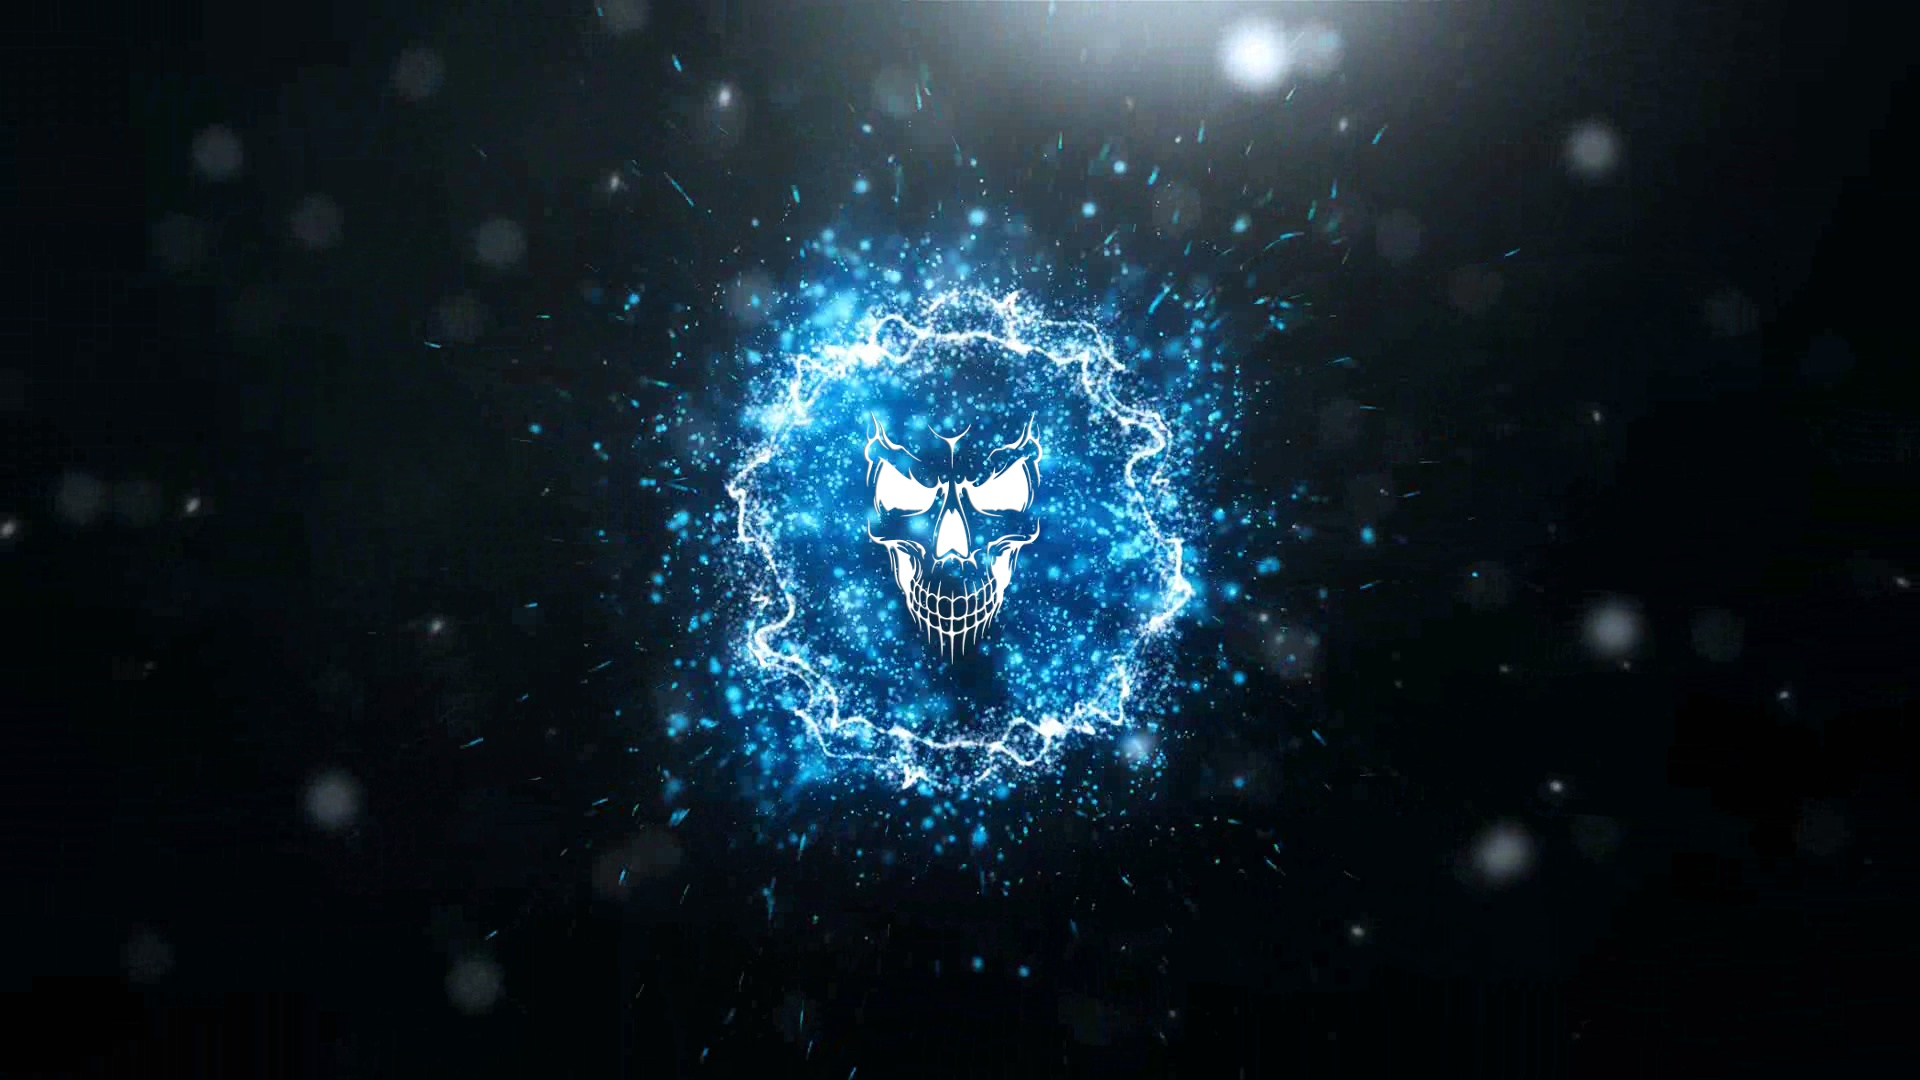 Skull logo intro template 124 sony vegas pro rkmfx for Sony vegas pro 9 templates free download